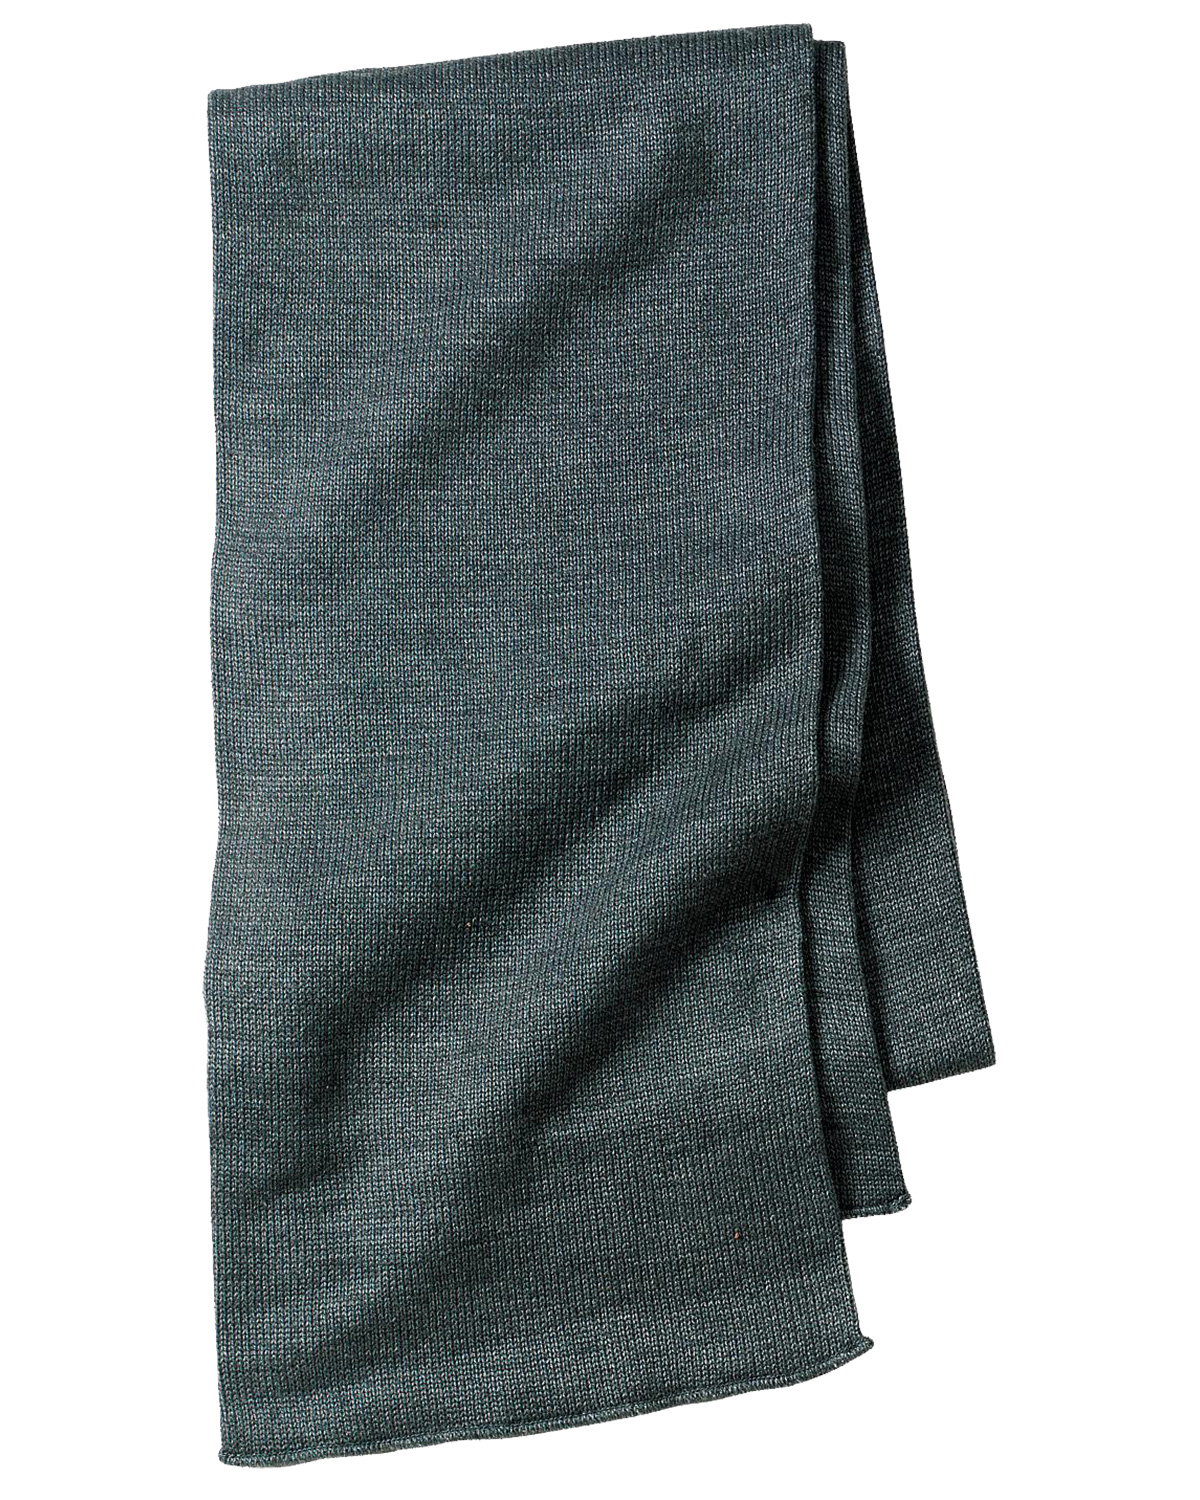 Port & Company KS01 Unisex Knitted Scarf at GotApparel